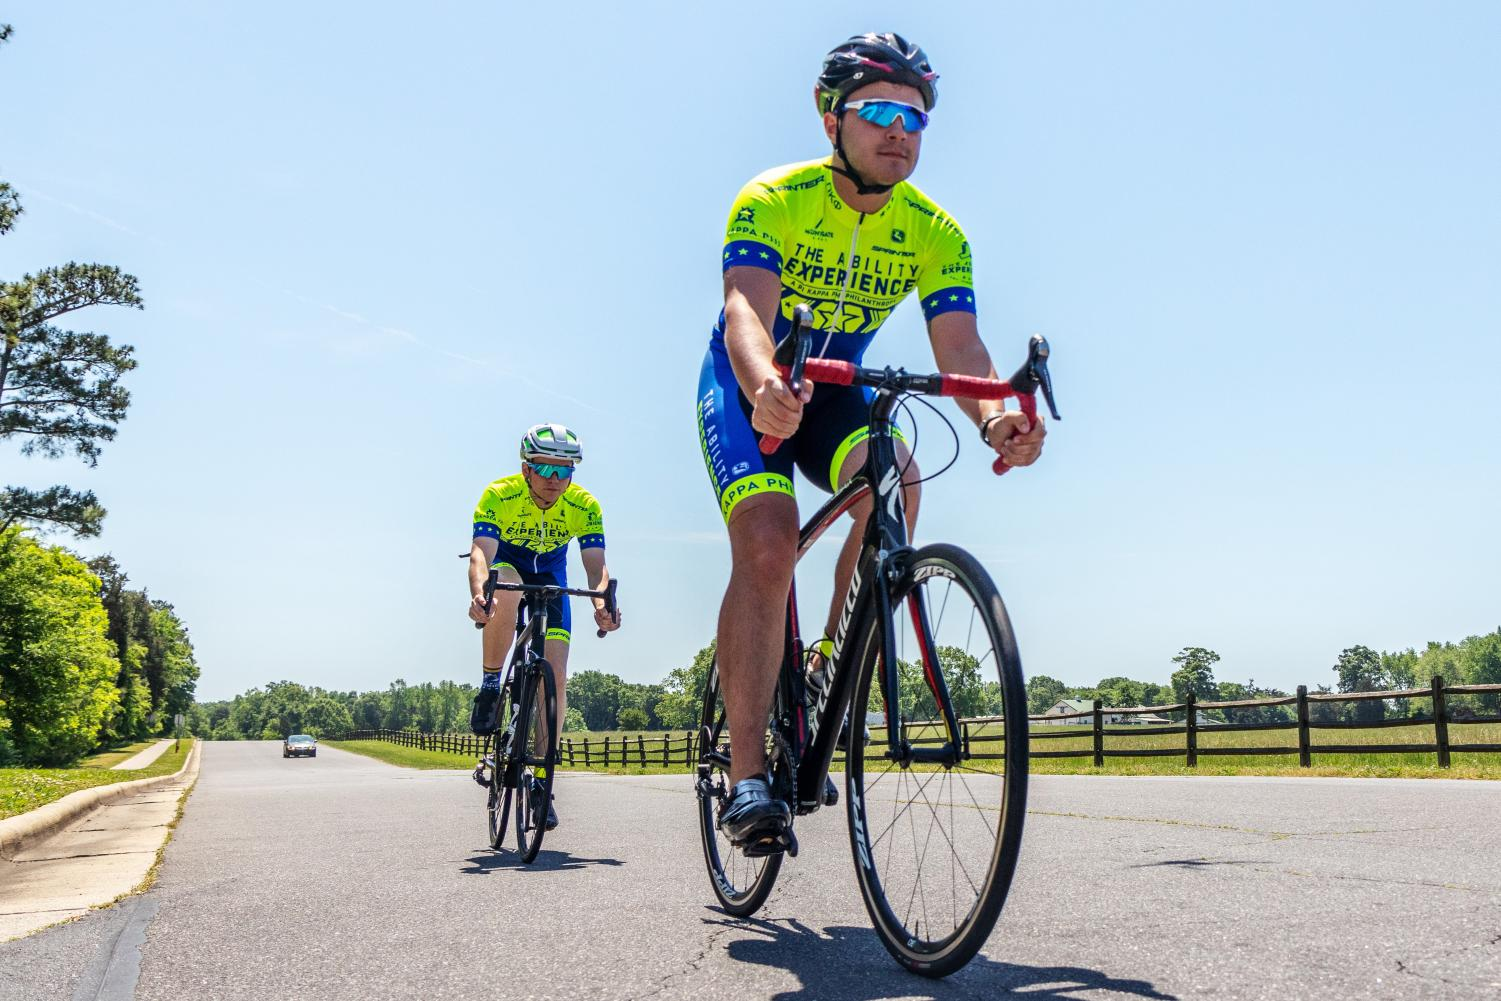 The Journey of Hope is organized by The Ability Experience. Pi Kappa Phi Members participate in the in the cross country ride to raise awareness and money for people with disabilities.